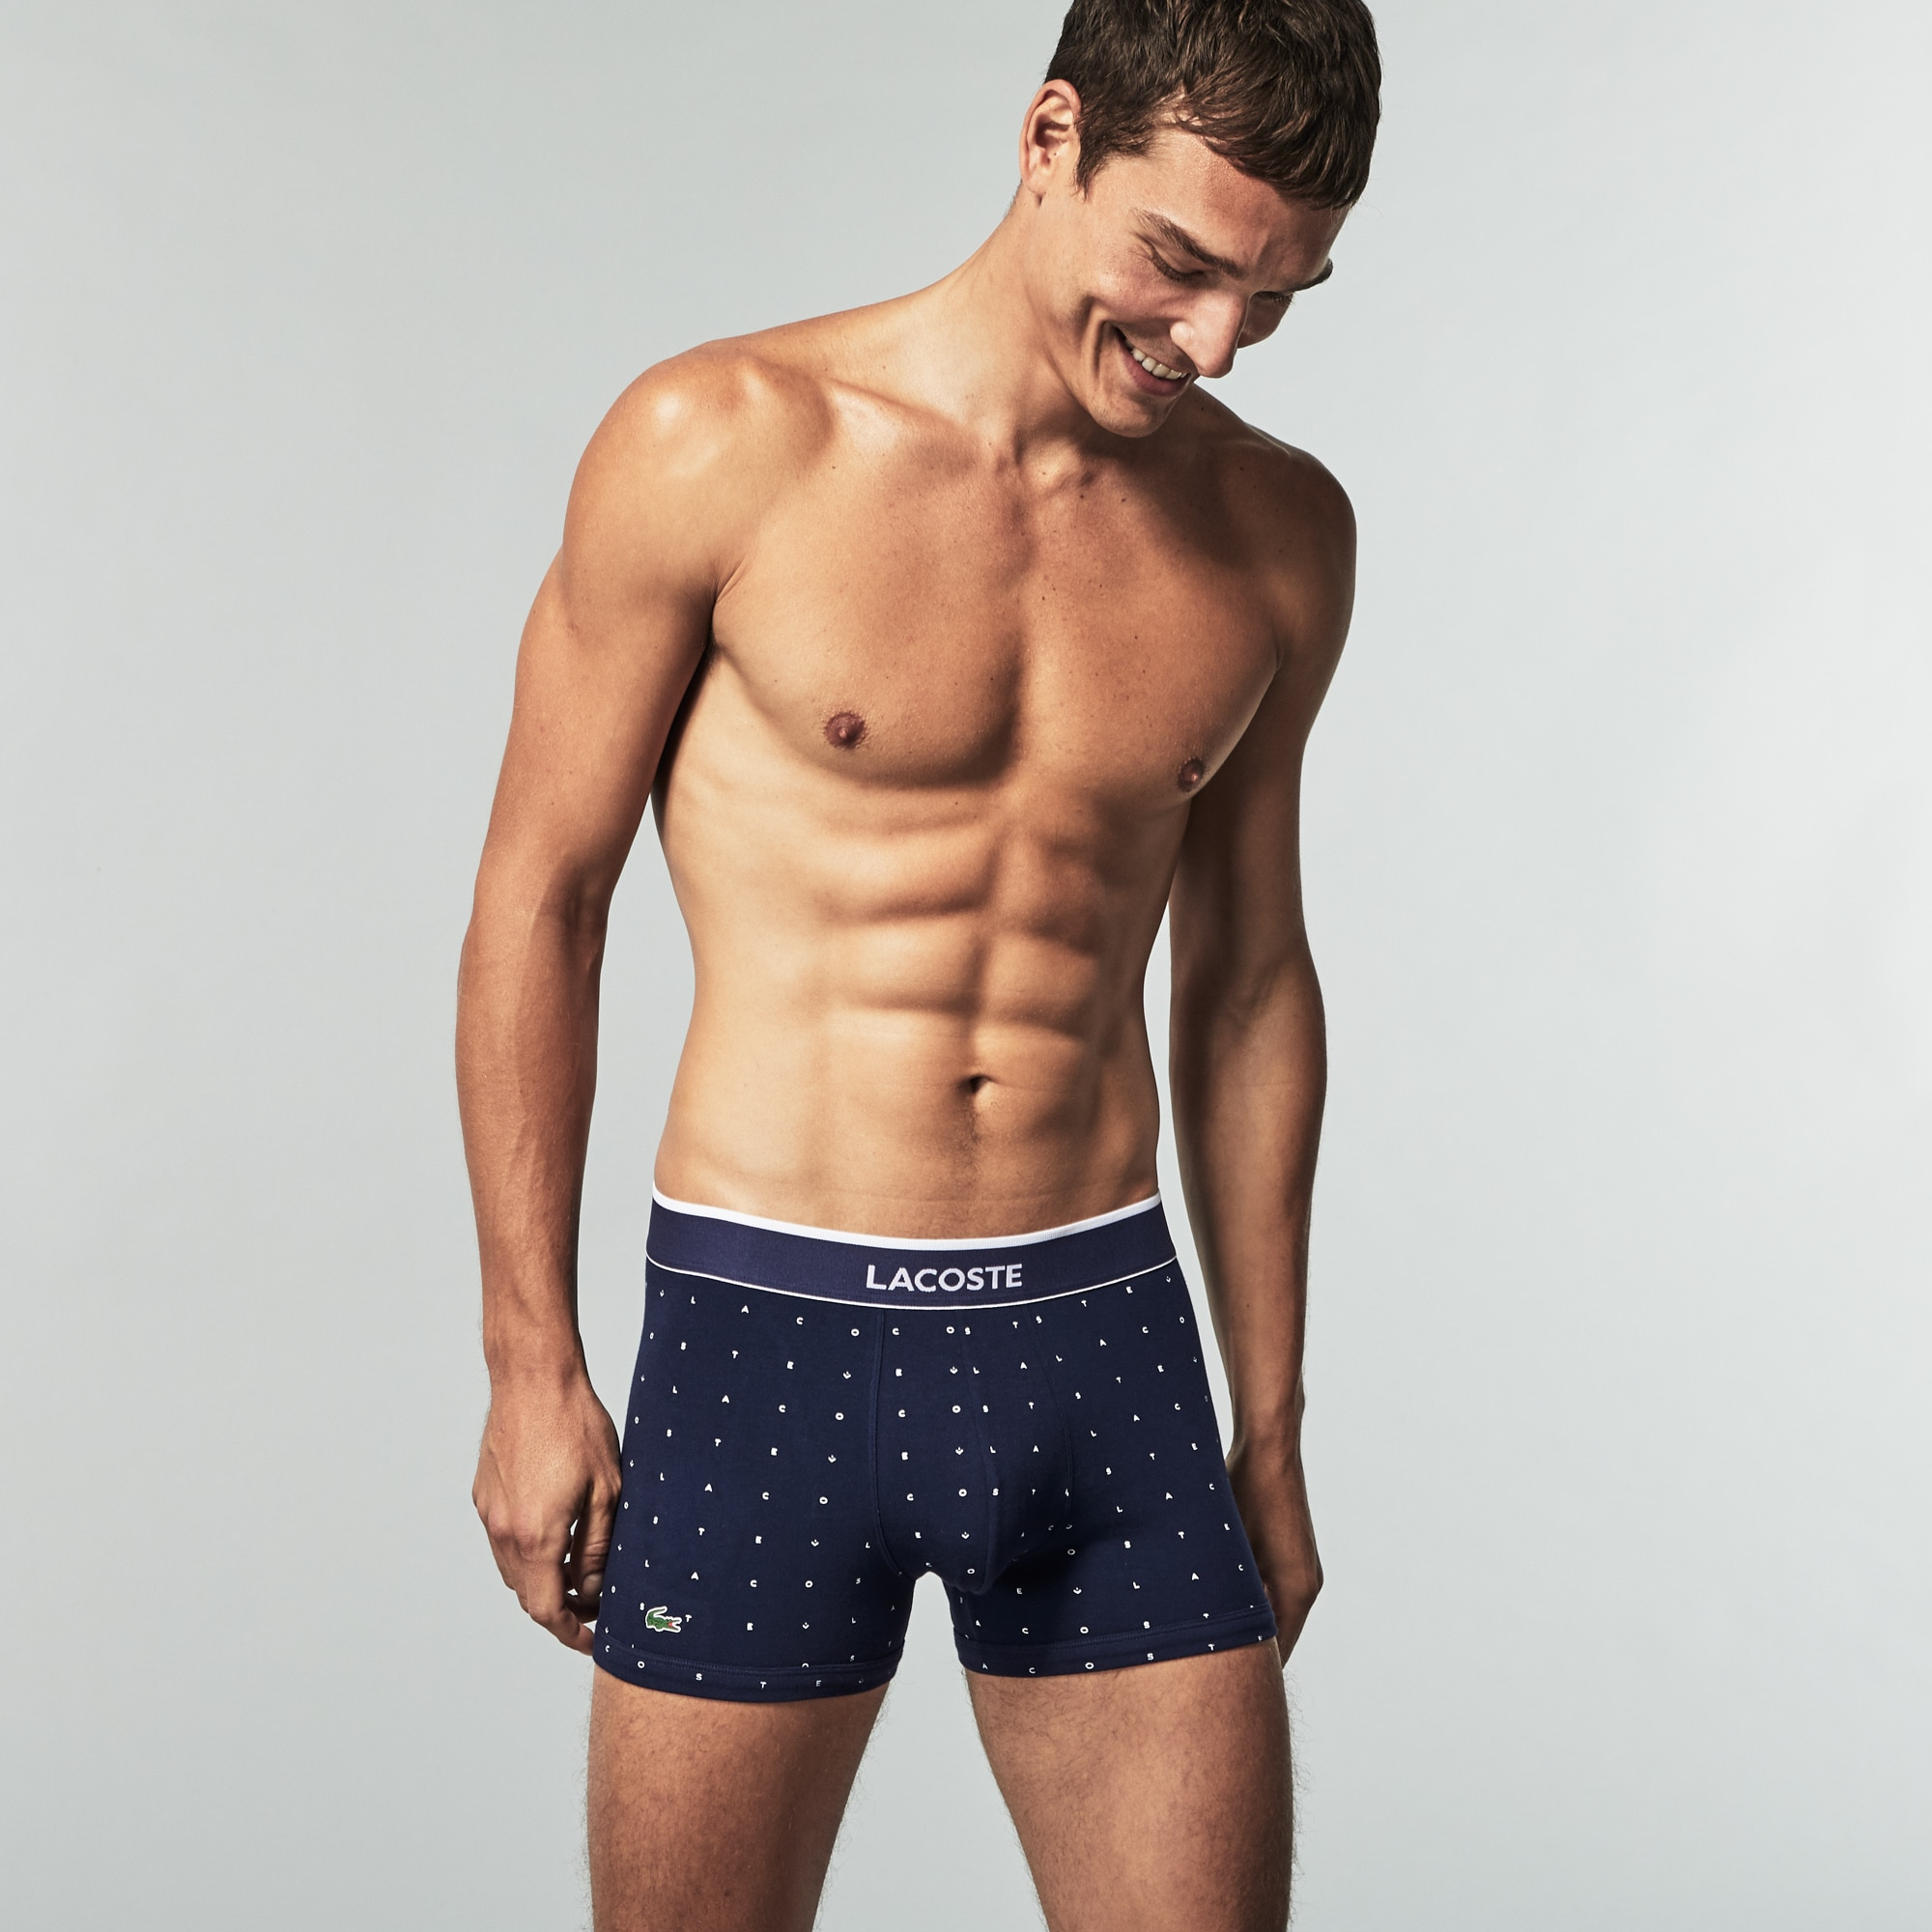 3-er Pack Colours Eng Anliegende Boxershorts